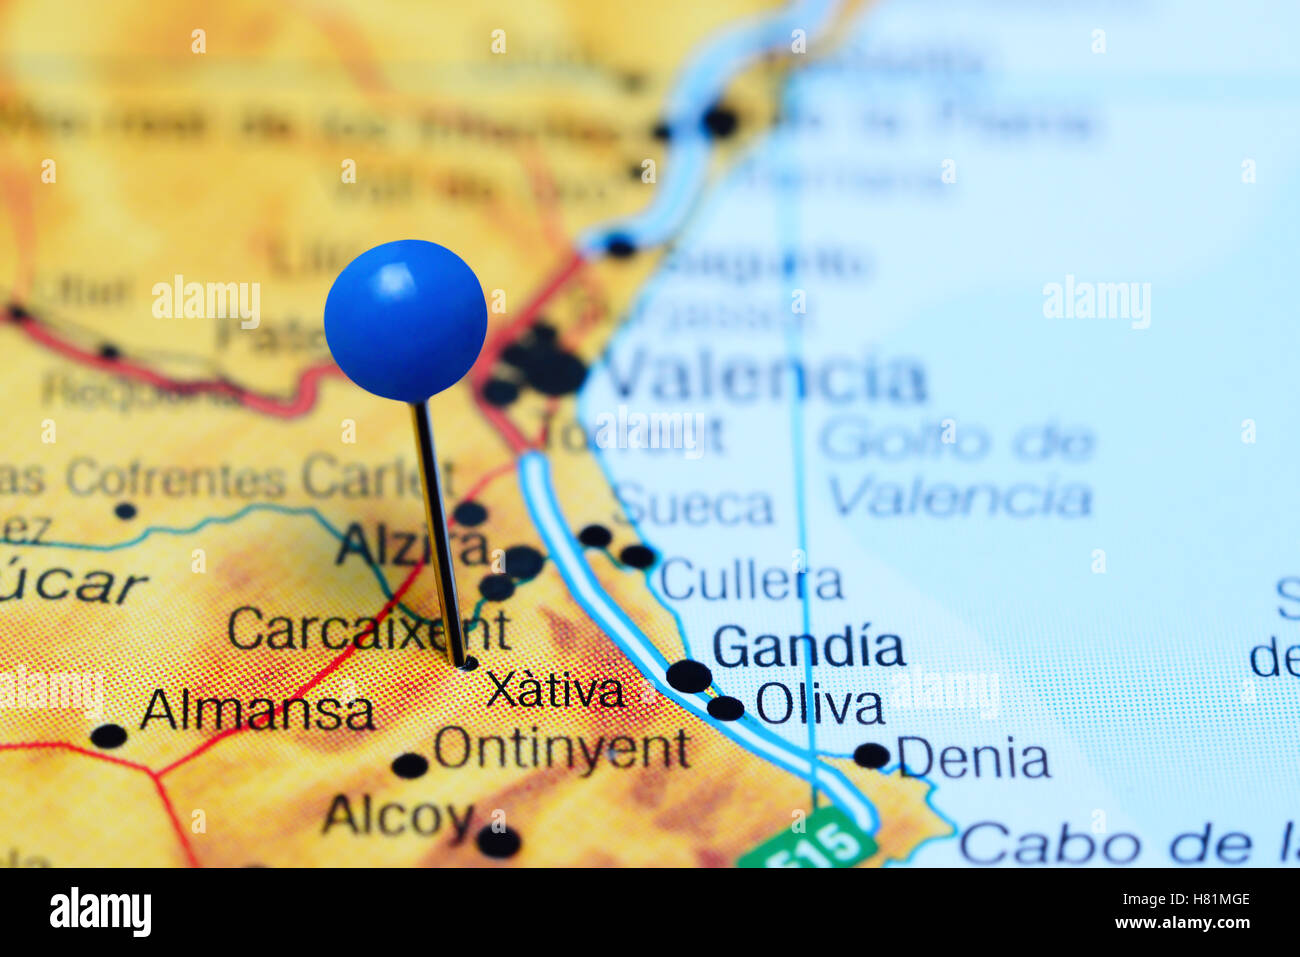 Map Of Xativa Spain.Xativa Pinned On A Map Of Spain Stock Photo 125427918 Alamy